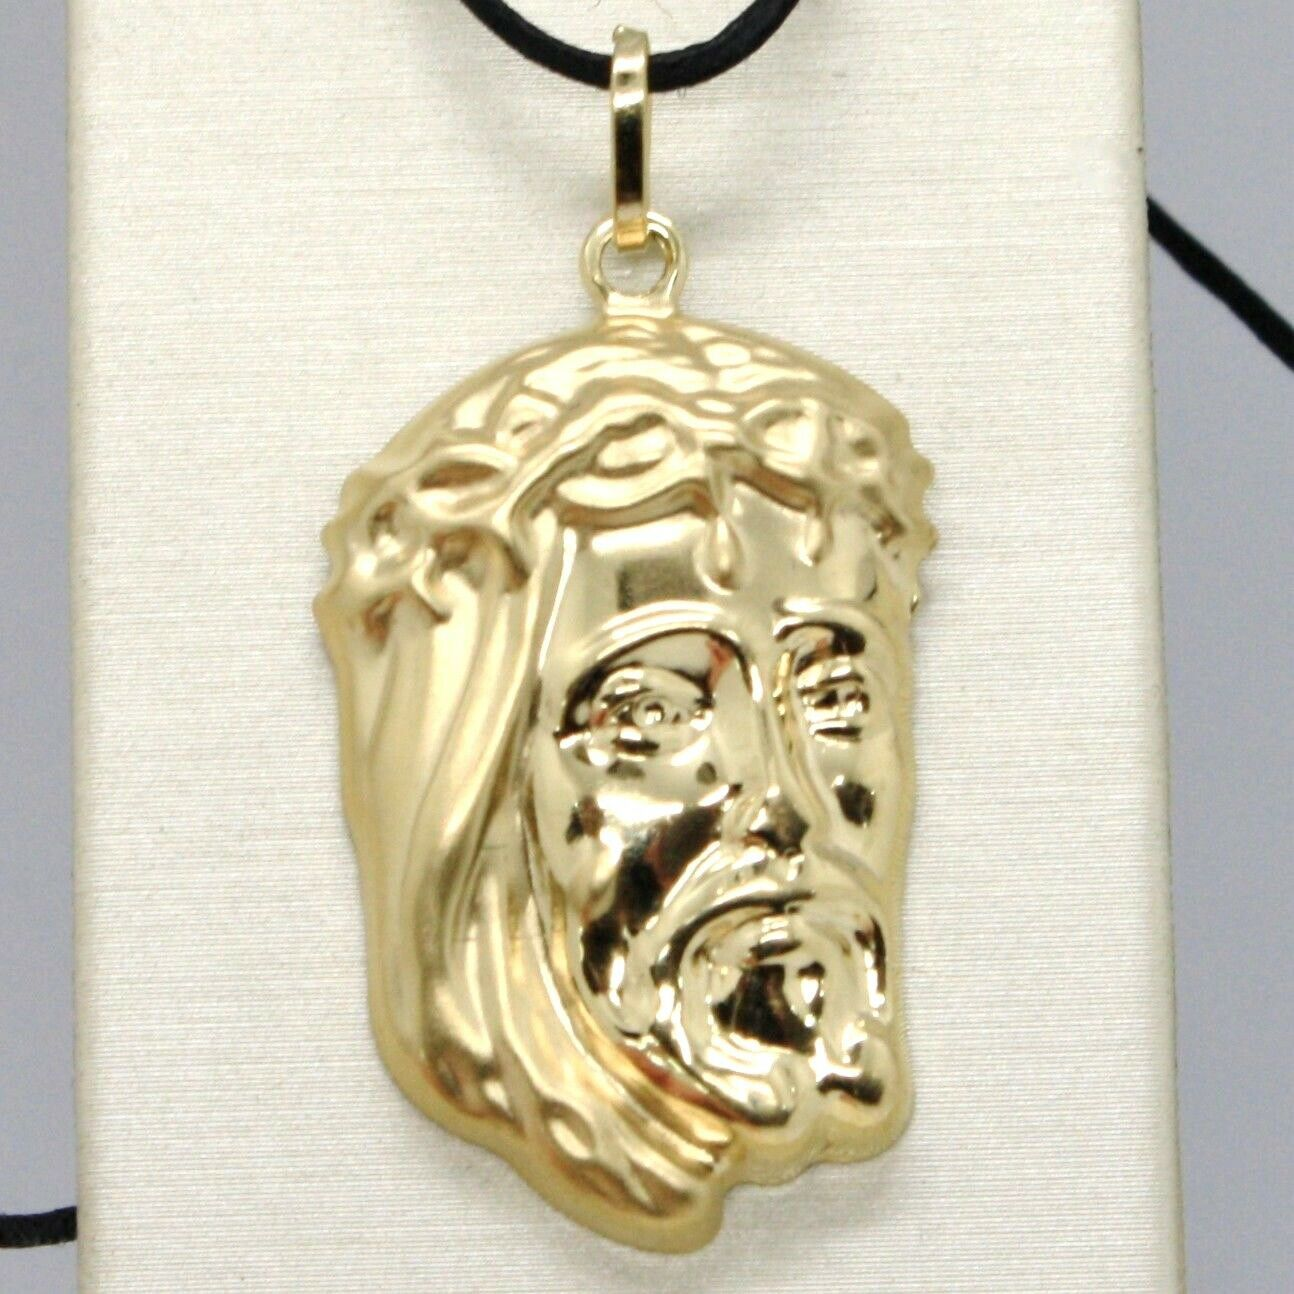 18K YELLOW GOLD JESUS FACE PENDANT CHARM 37 MM, 1.5 IN, FINELY WORKED ITALY MADE